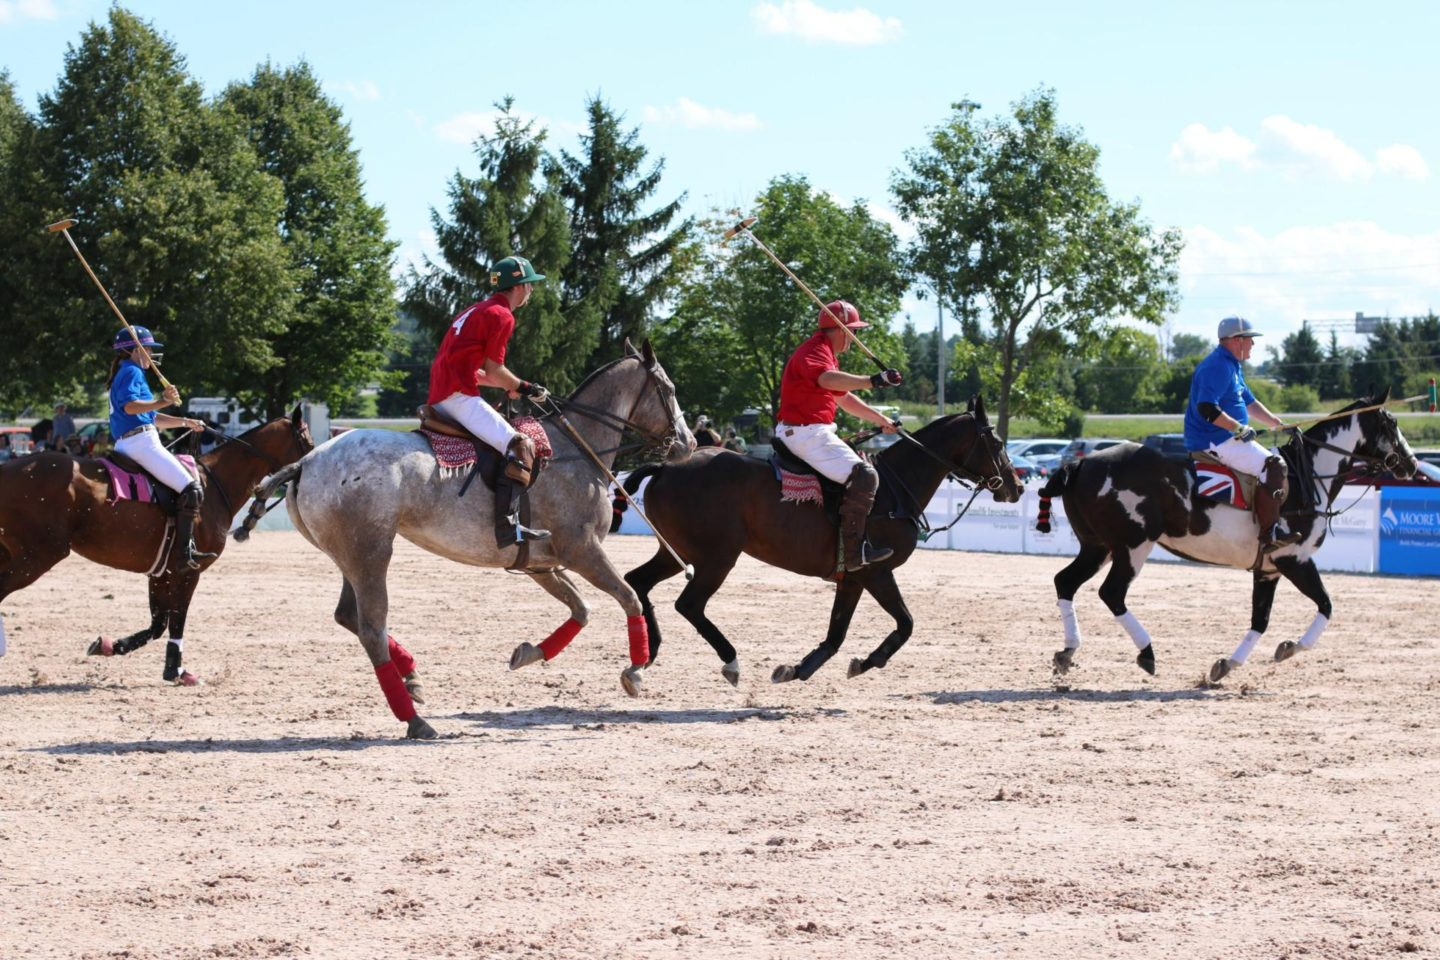 Polo In The Park Ottawa: A Style Guide